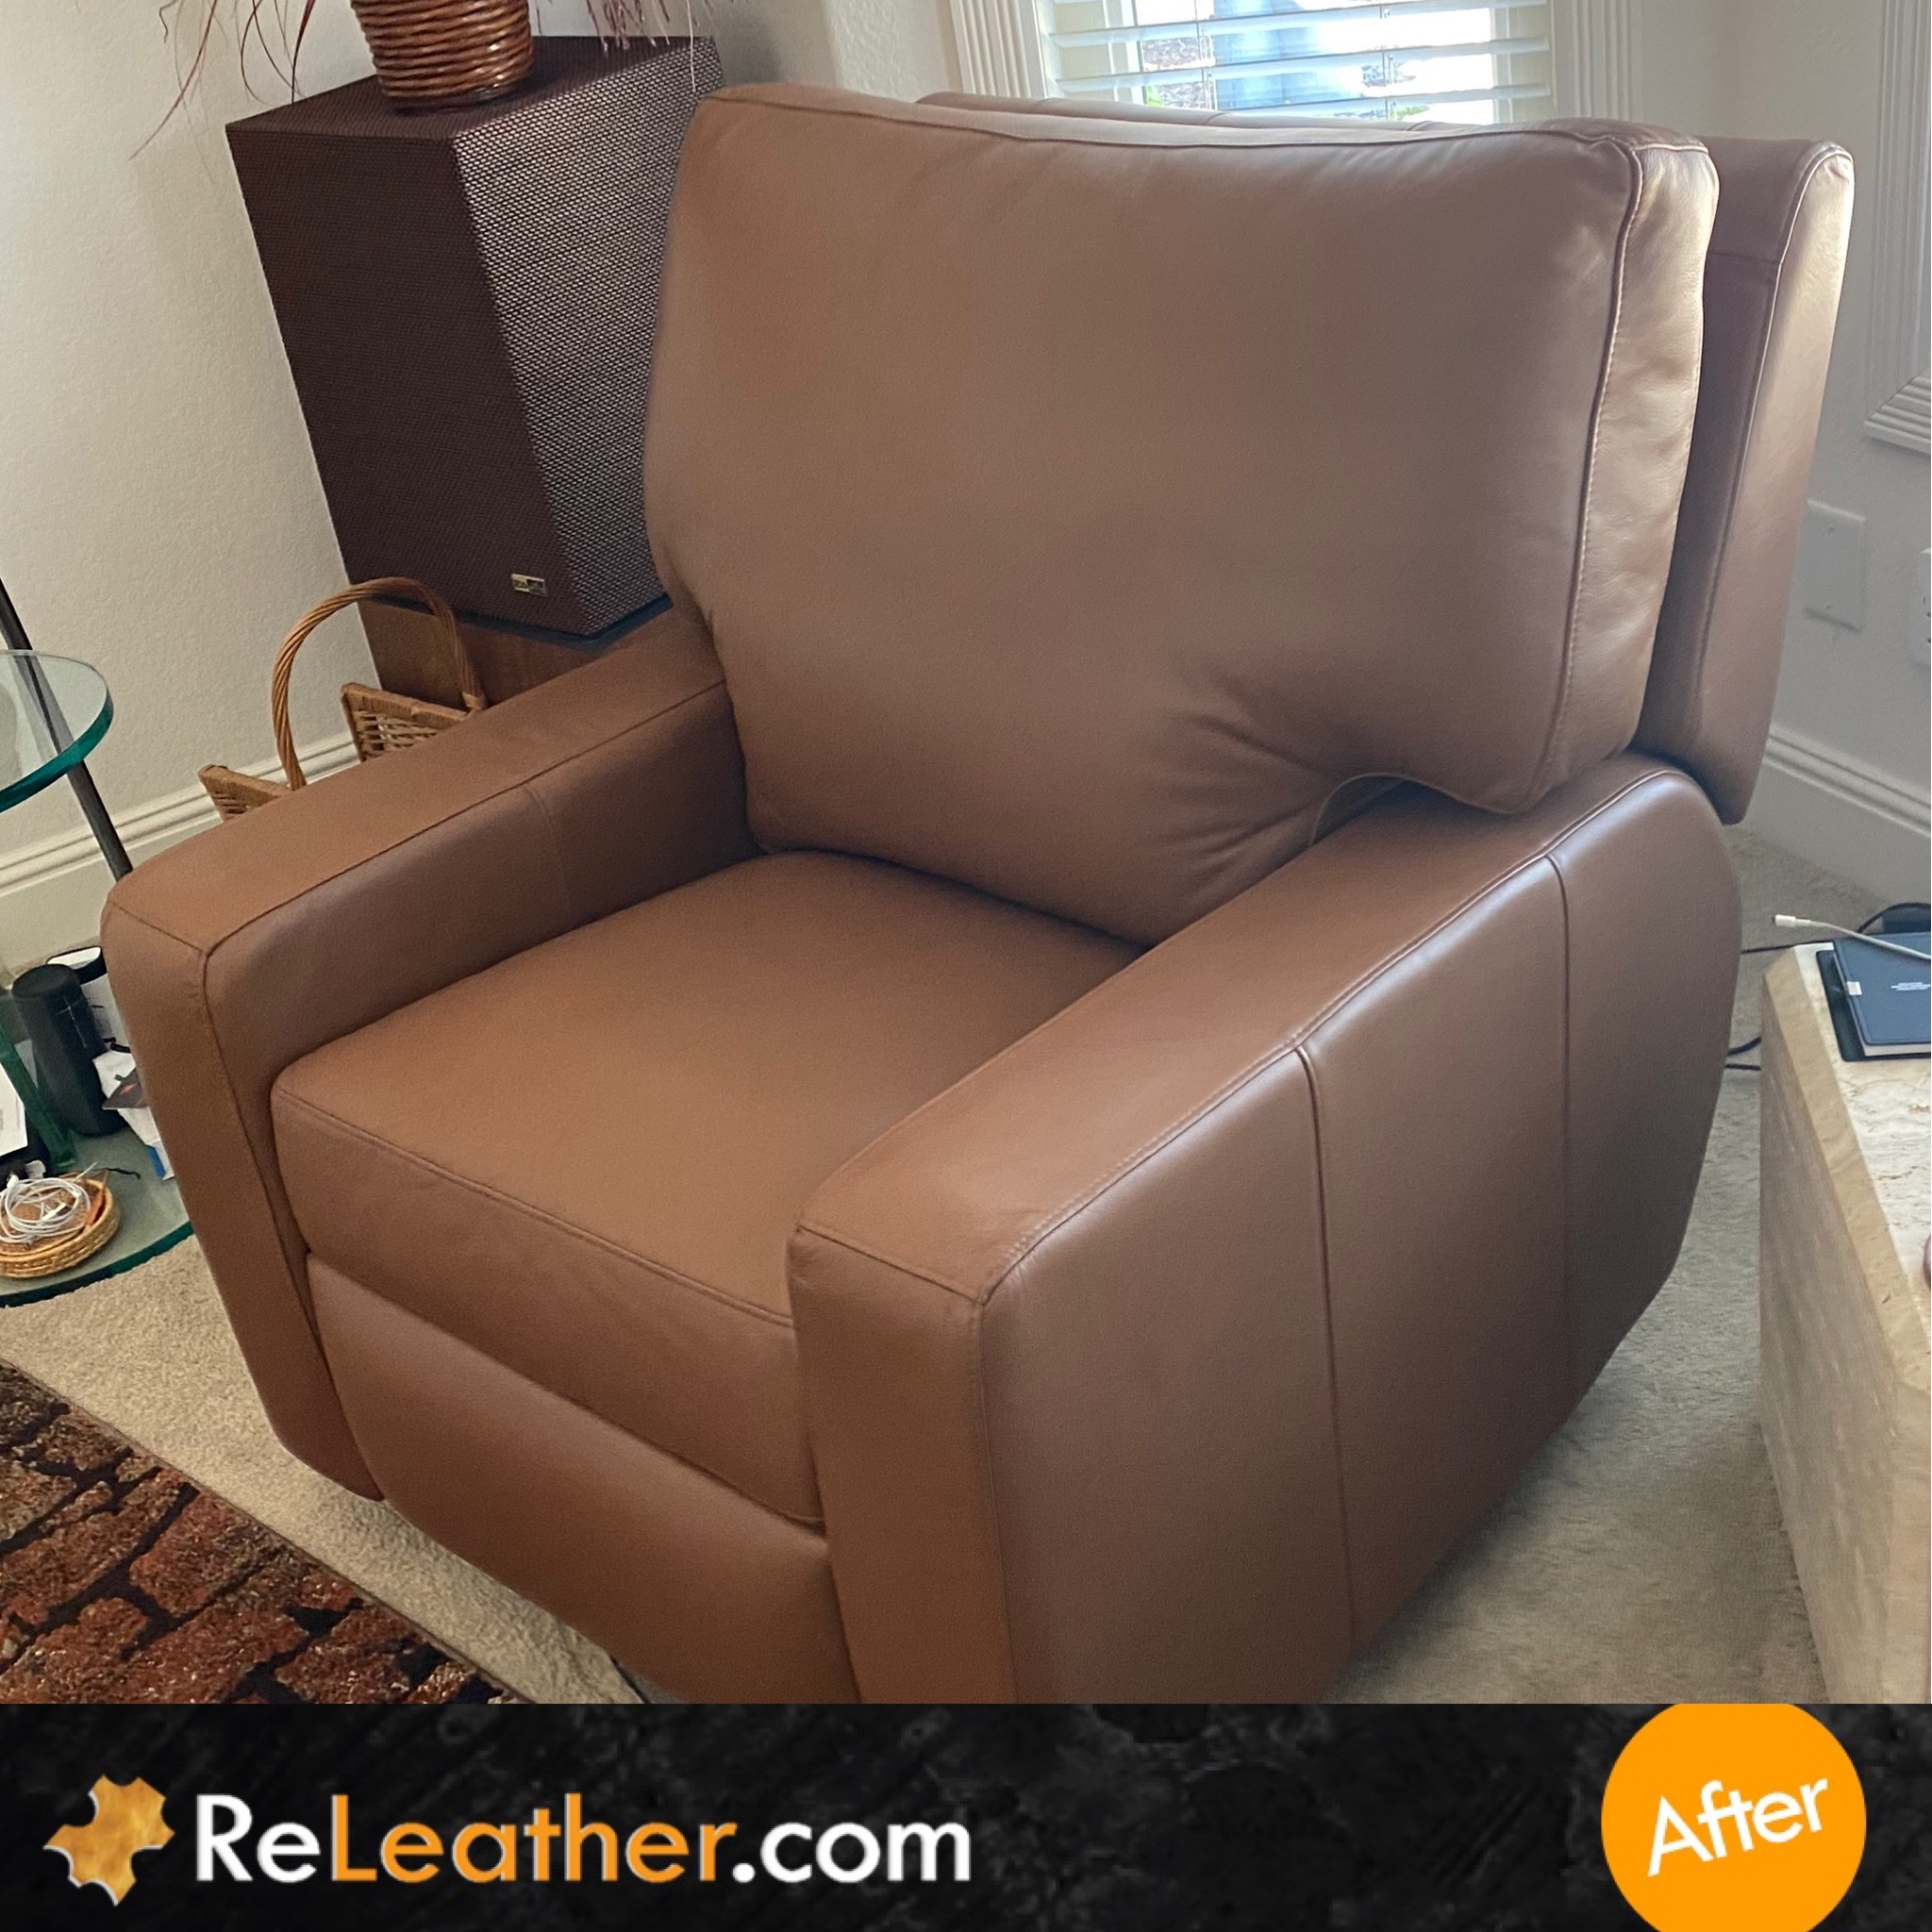 After Picture of Leather Dyeing Chair Sofa in San Diego